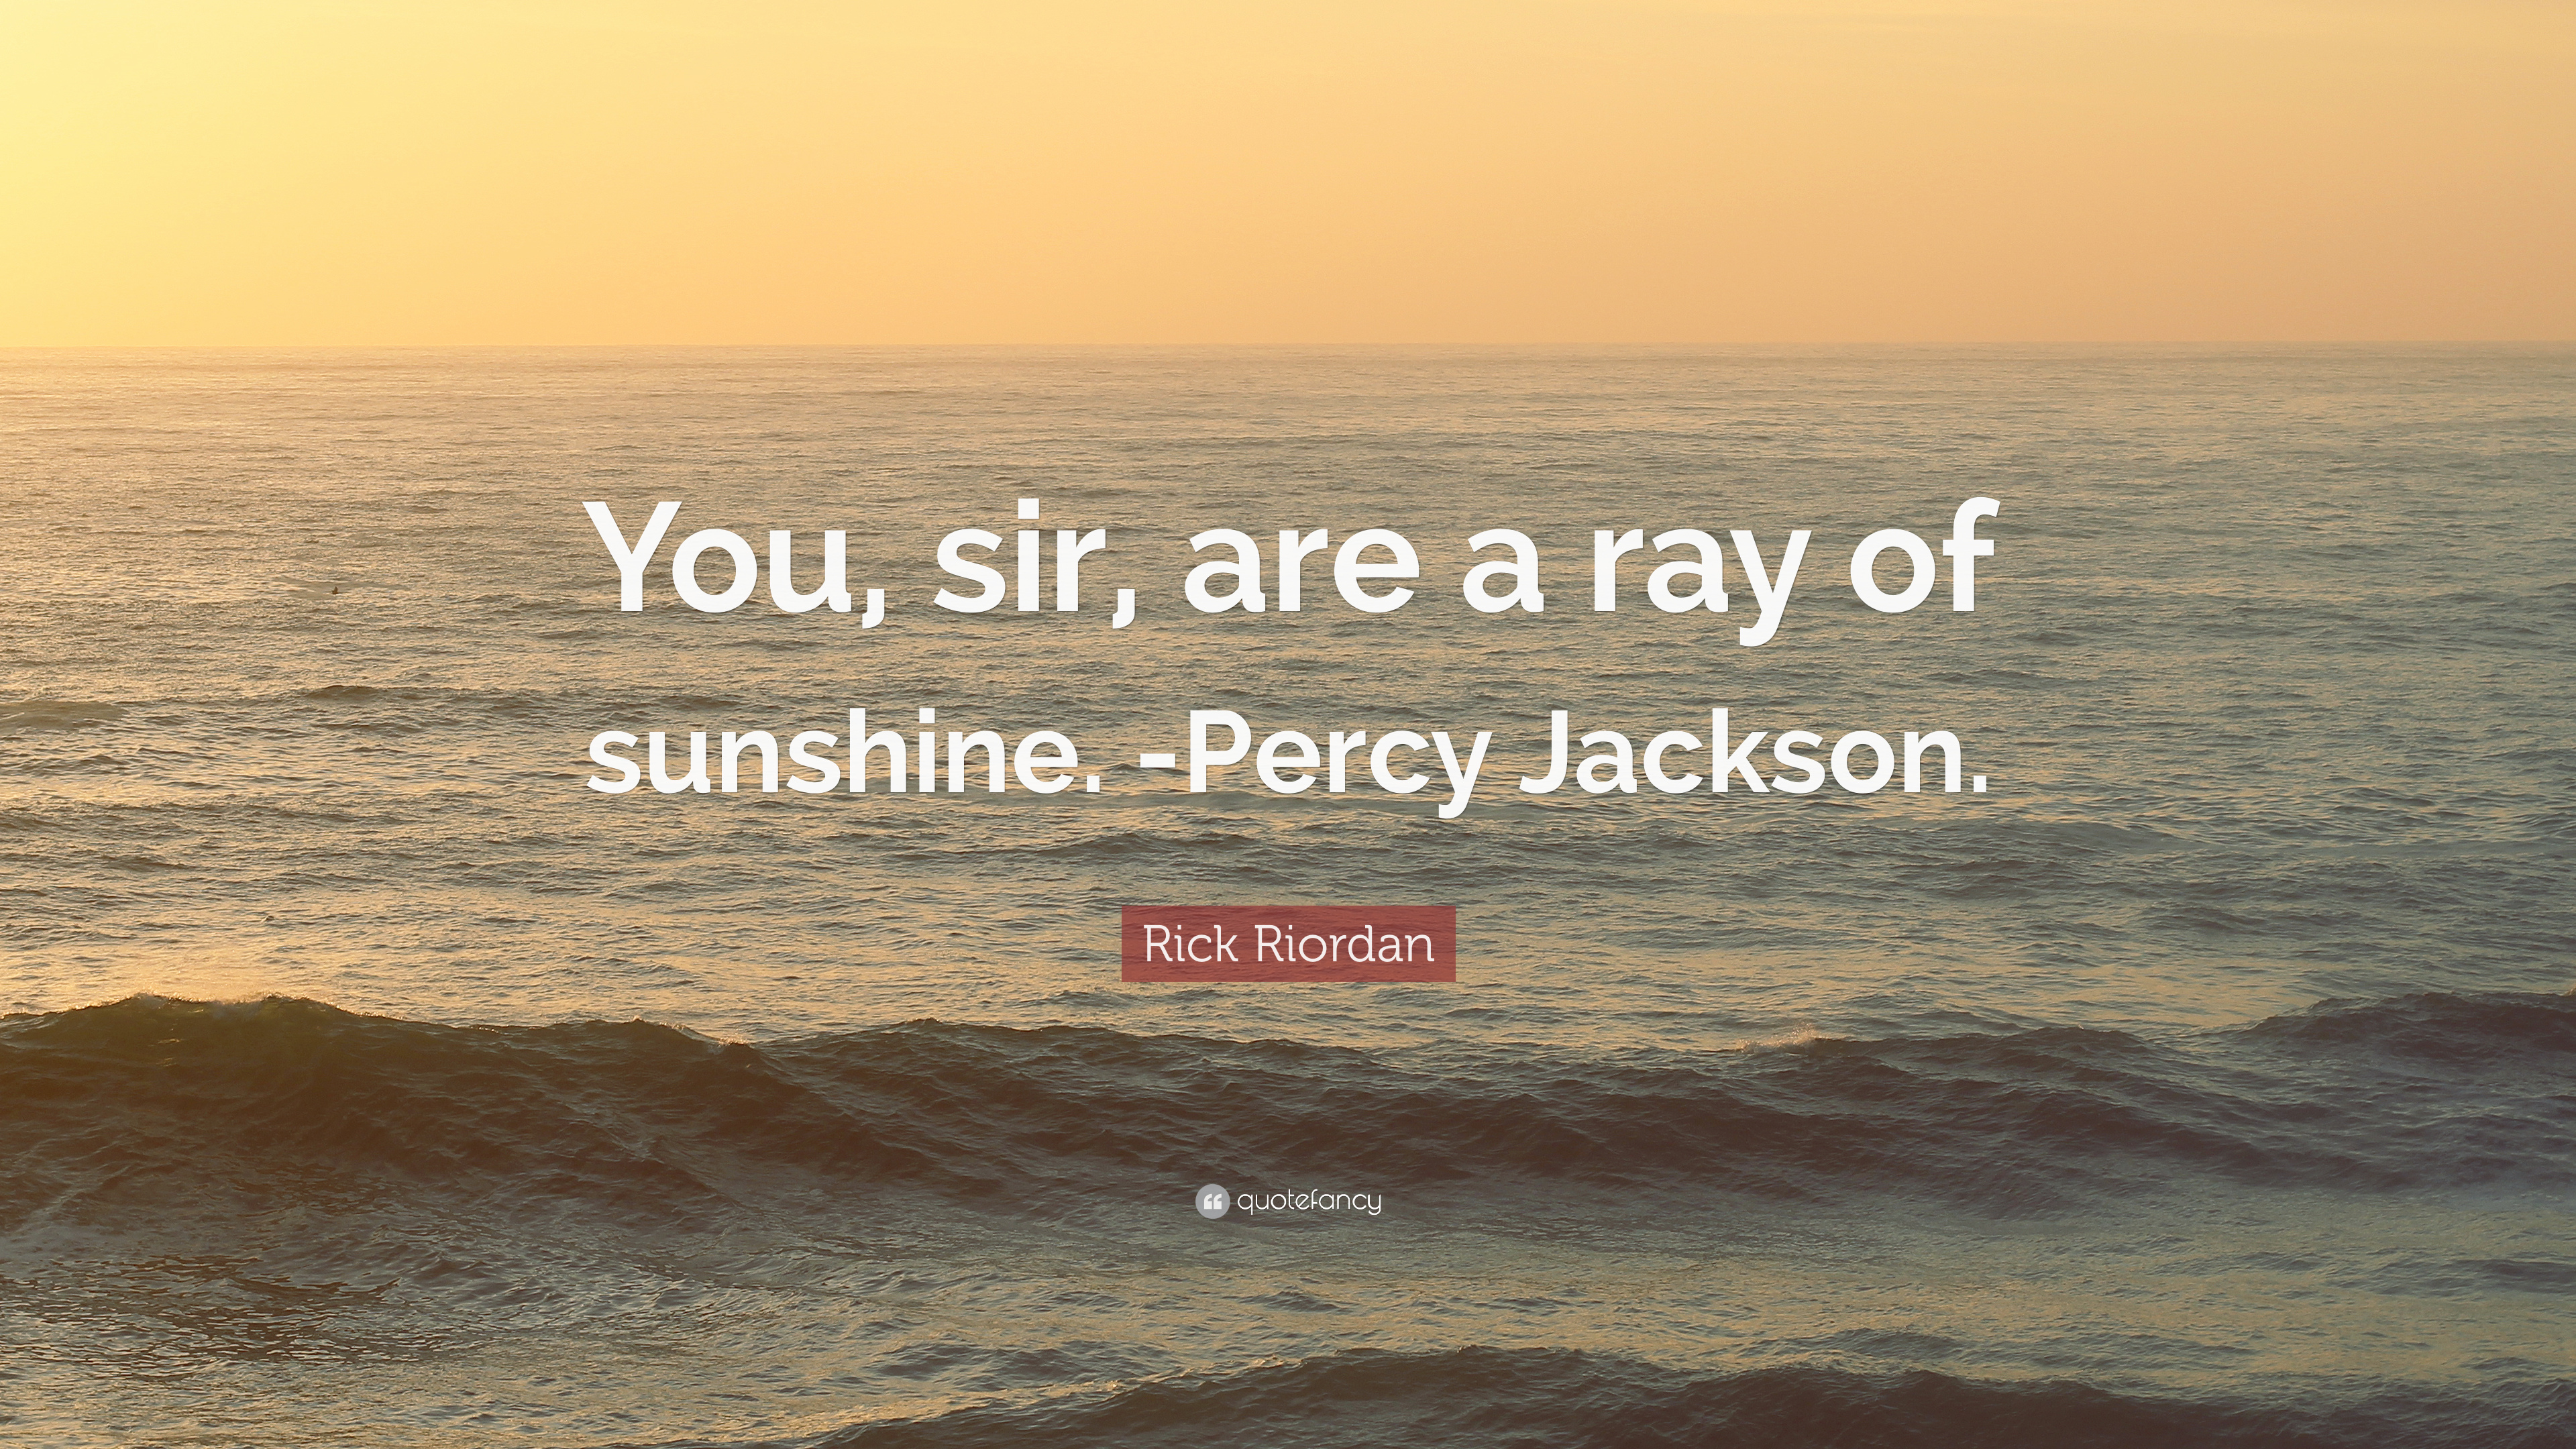 Rick riordan quote you sir are a ray of sunshine percy jackson 6 wallpapers voltagebd Image collections